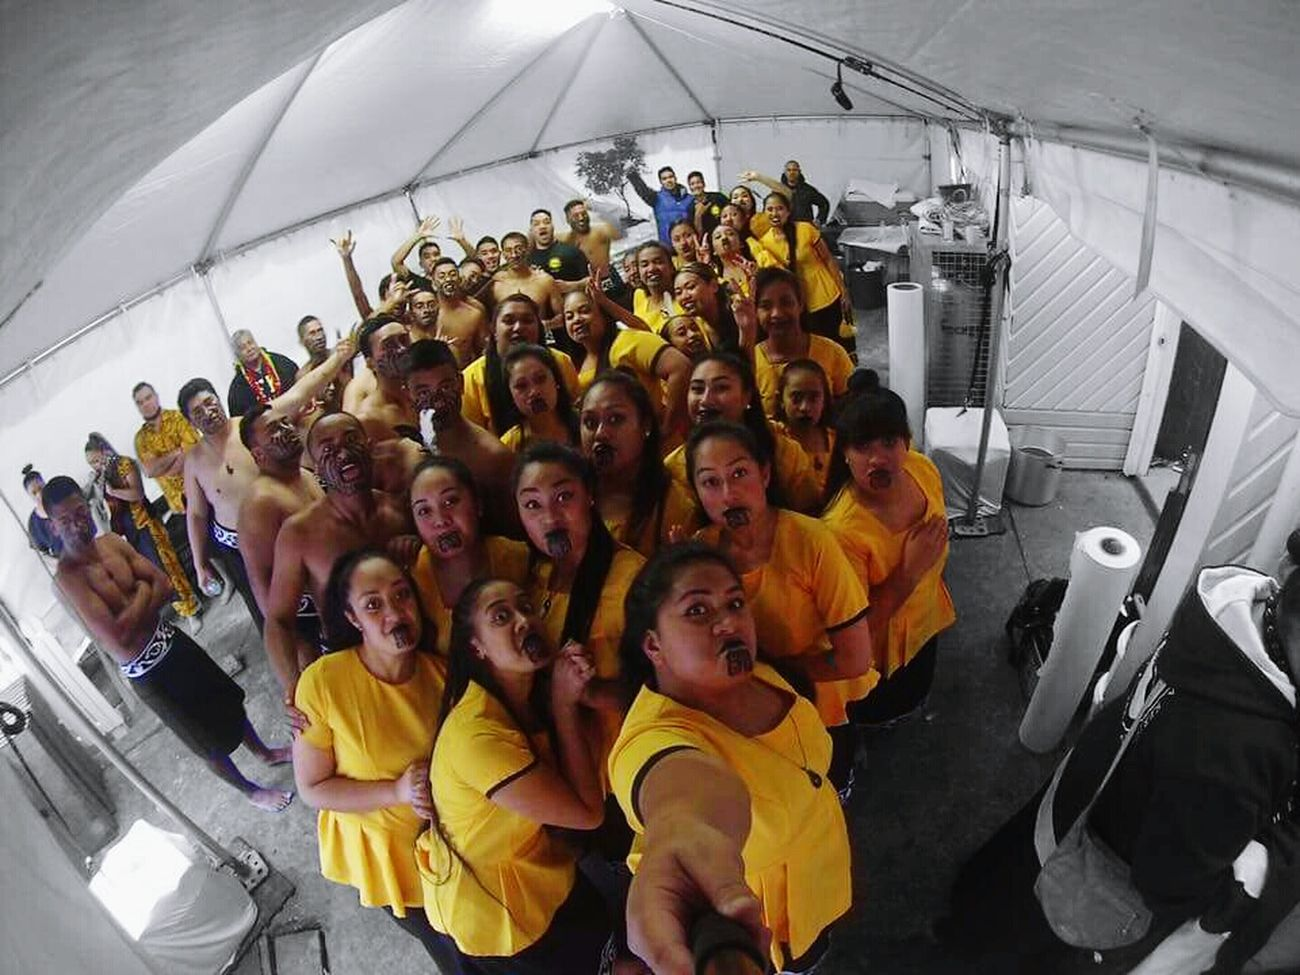 Throw back to last saturdays happs. Part two of the church's 50th jubilee. Kapahaka EFKSNewtown DROSBROG Churchfams